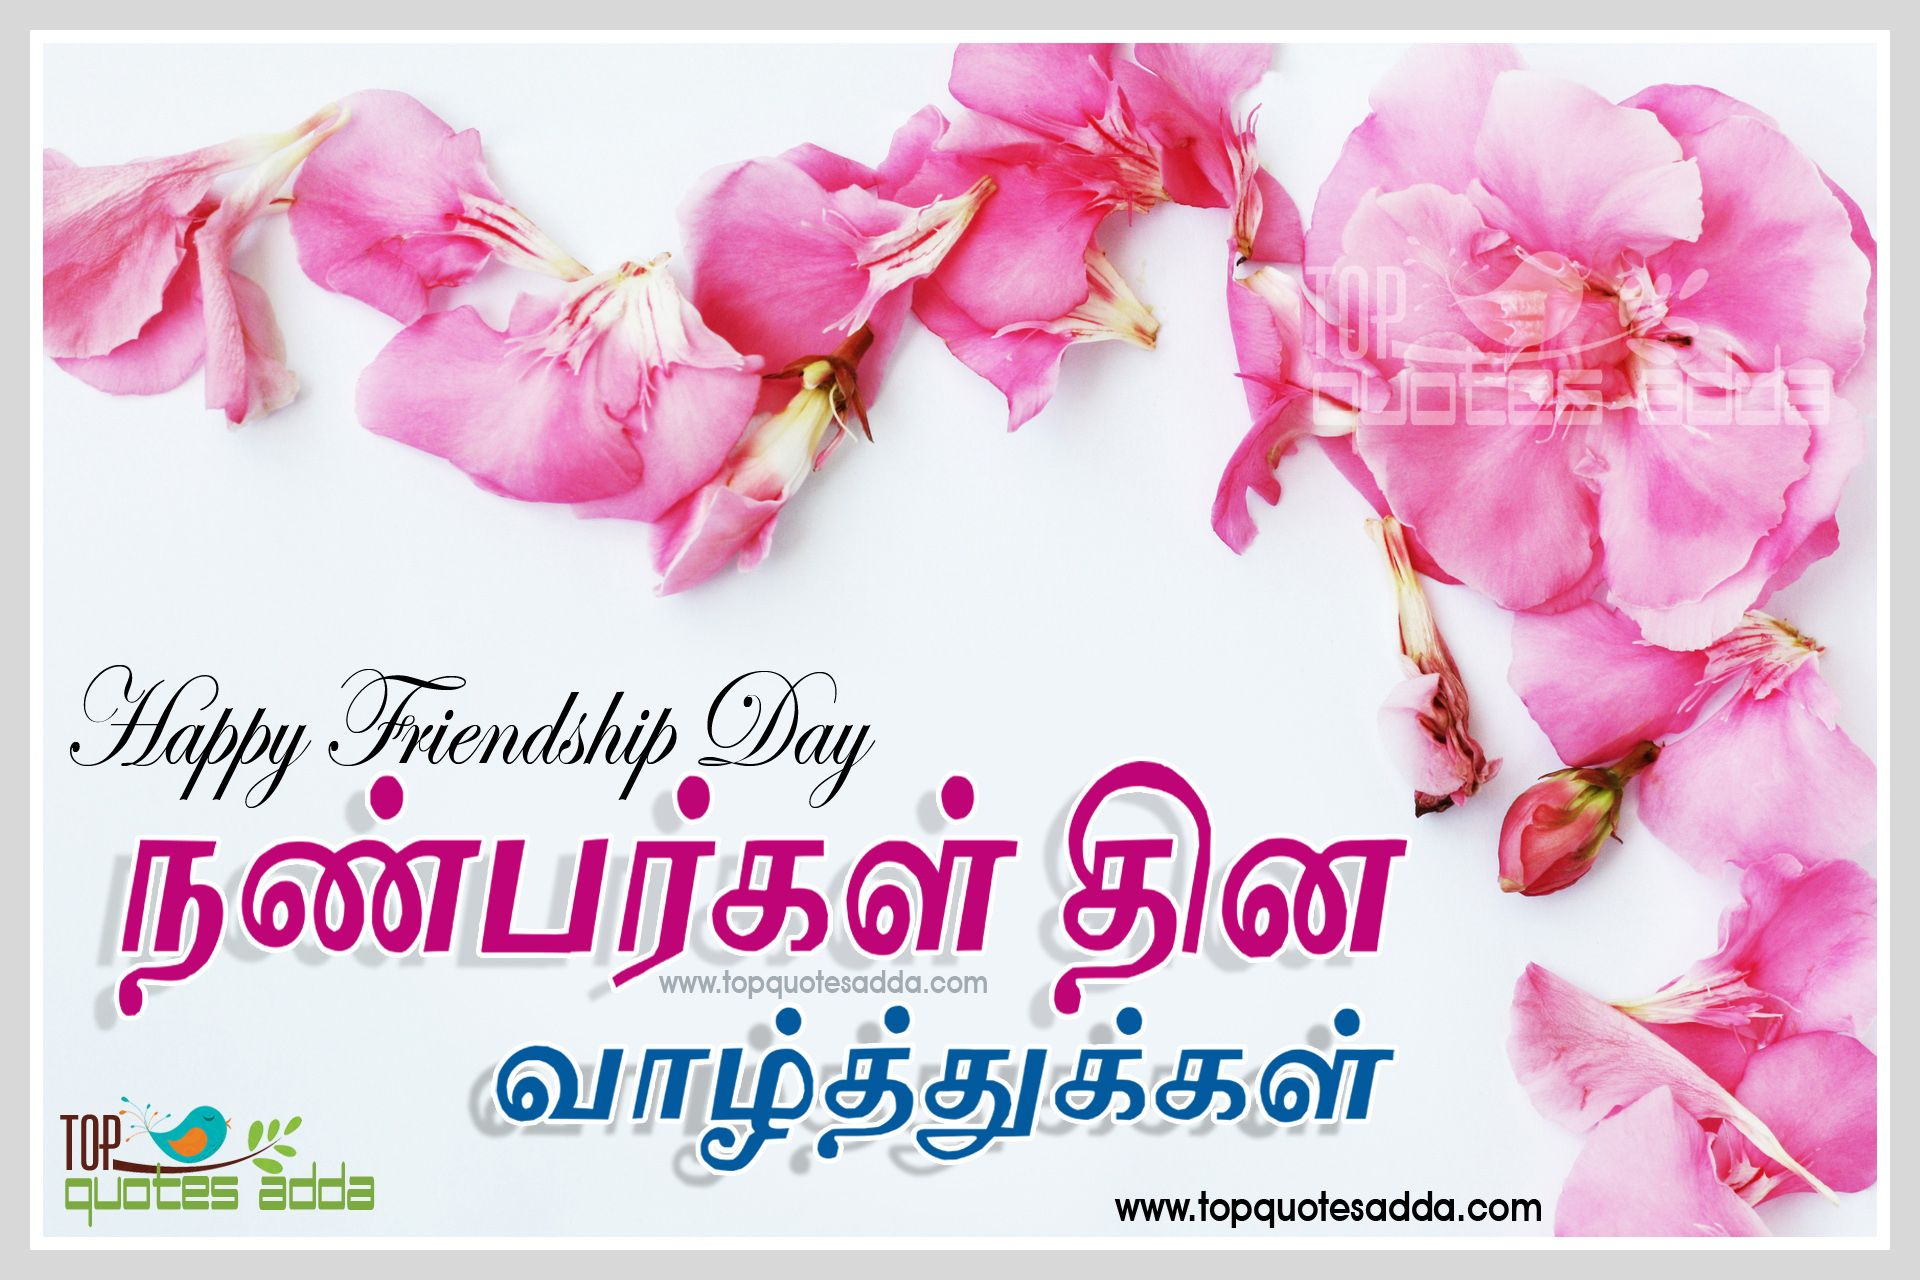 Happy friendship day tamil quotes and pictures topquotesadda